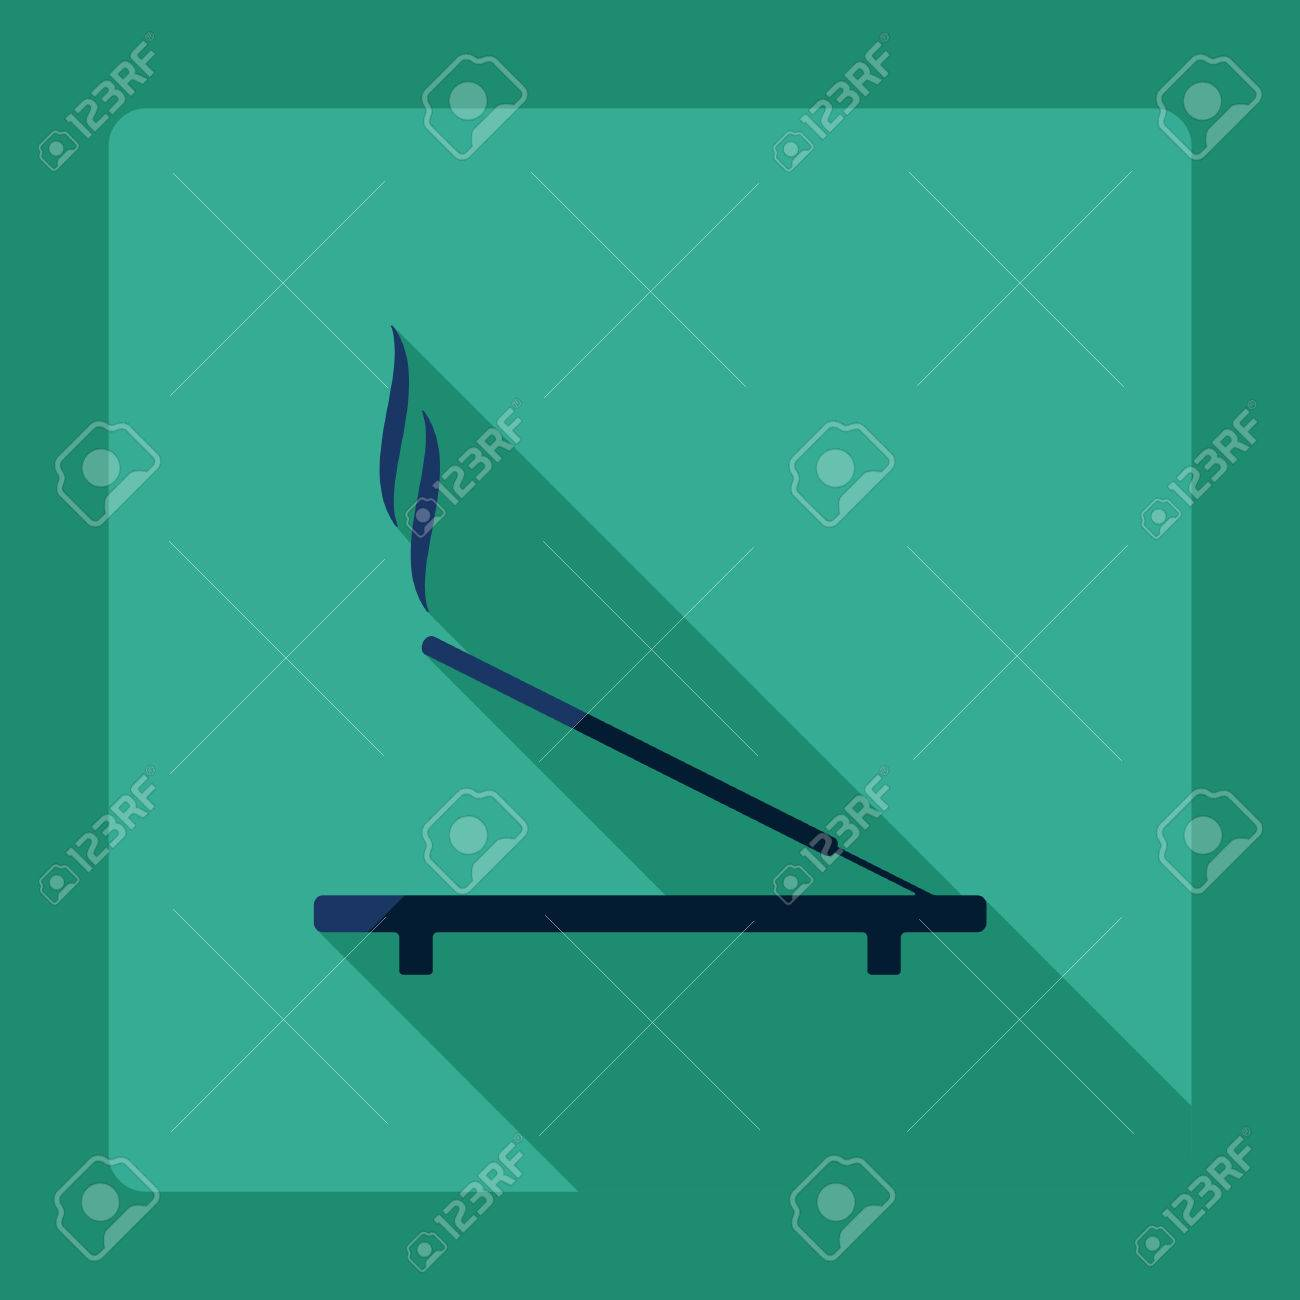 Flat Modern Design With Shadow Incense Sticks Royalty Free Cliparts Vectors And Stock Illustration Image 53023601